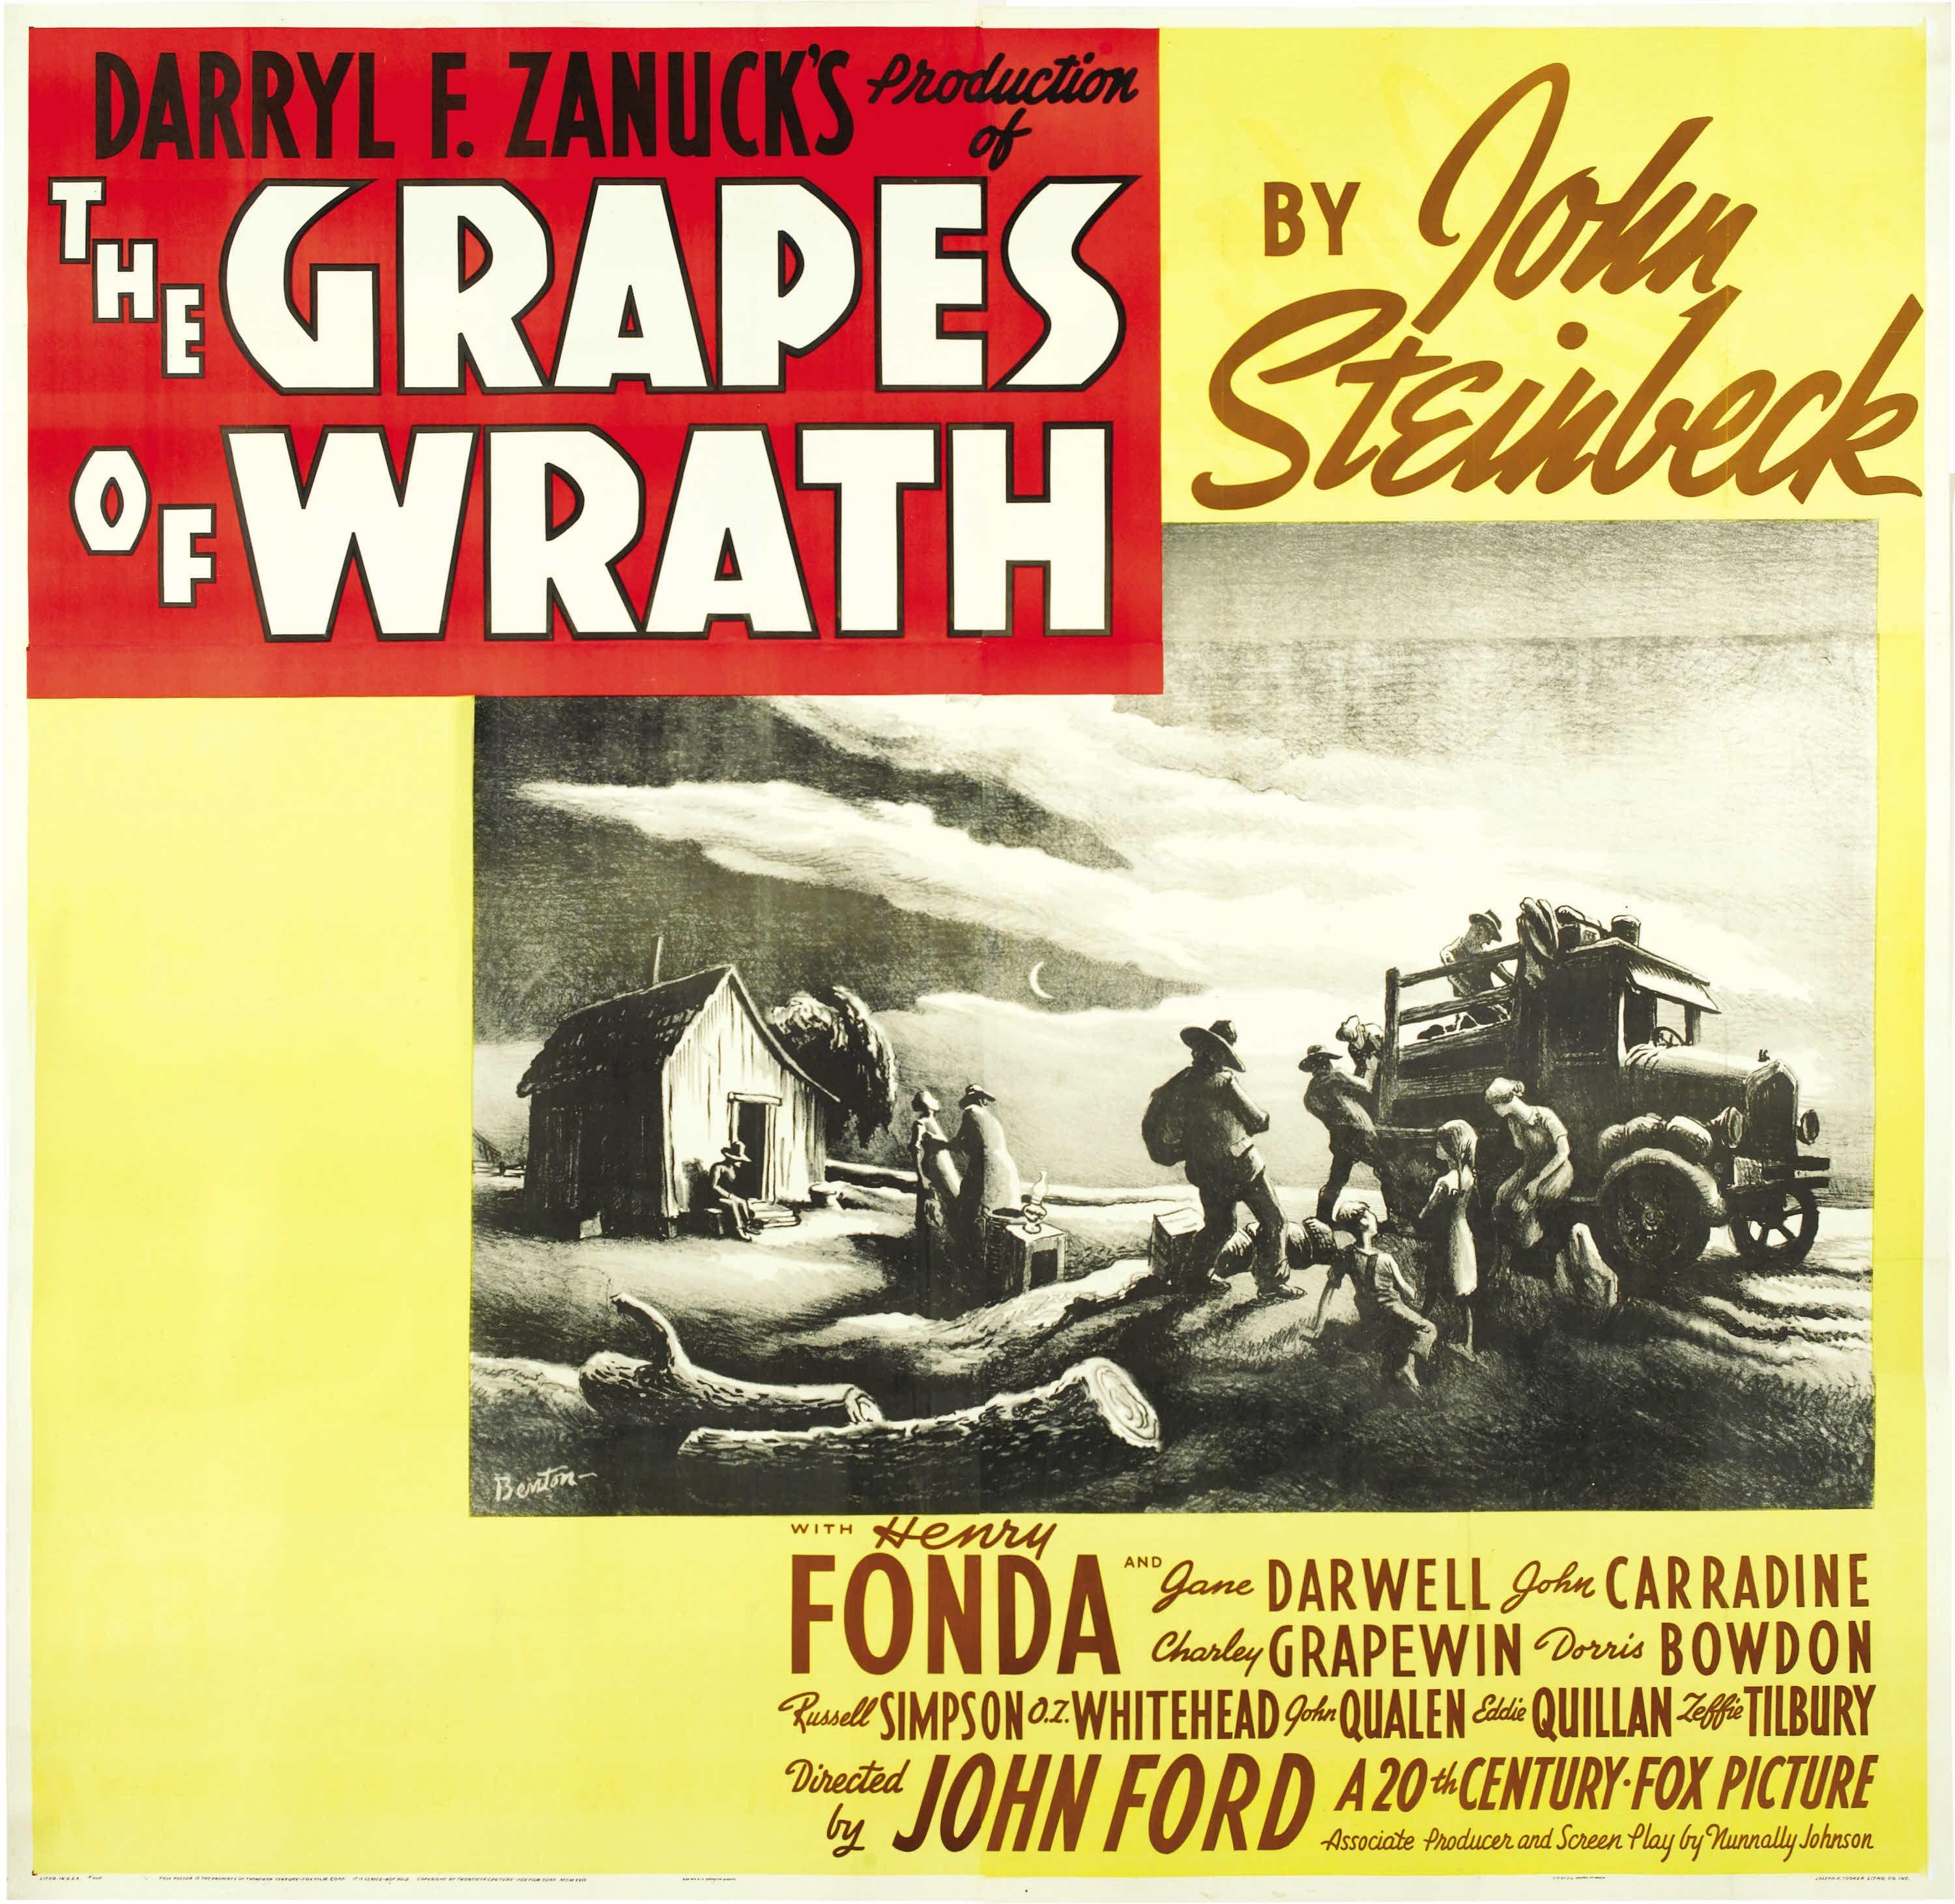 grapes of wrath movie essay questions